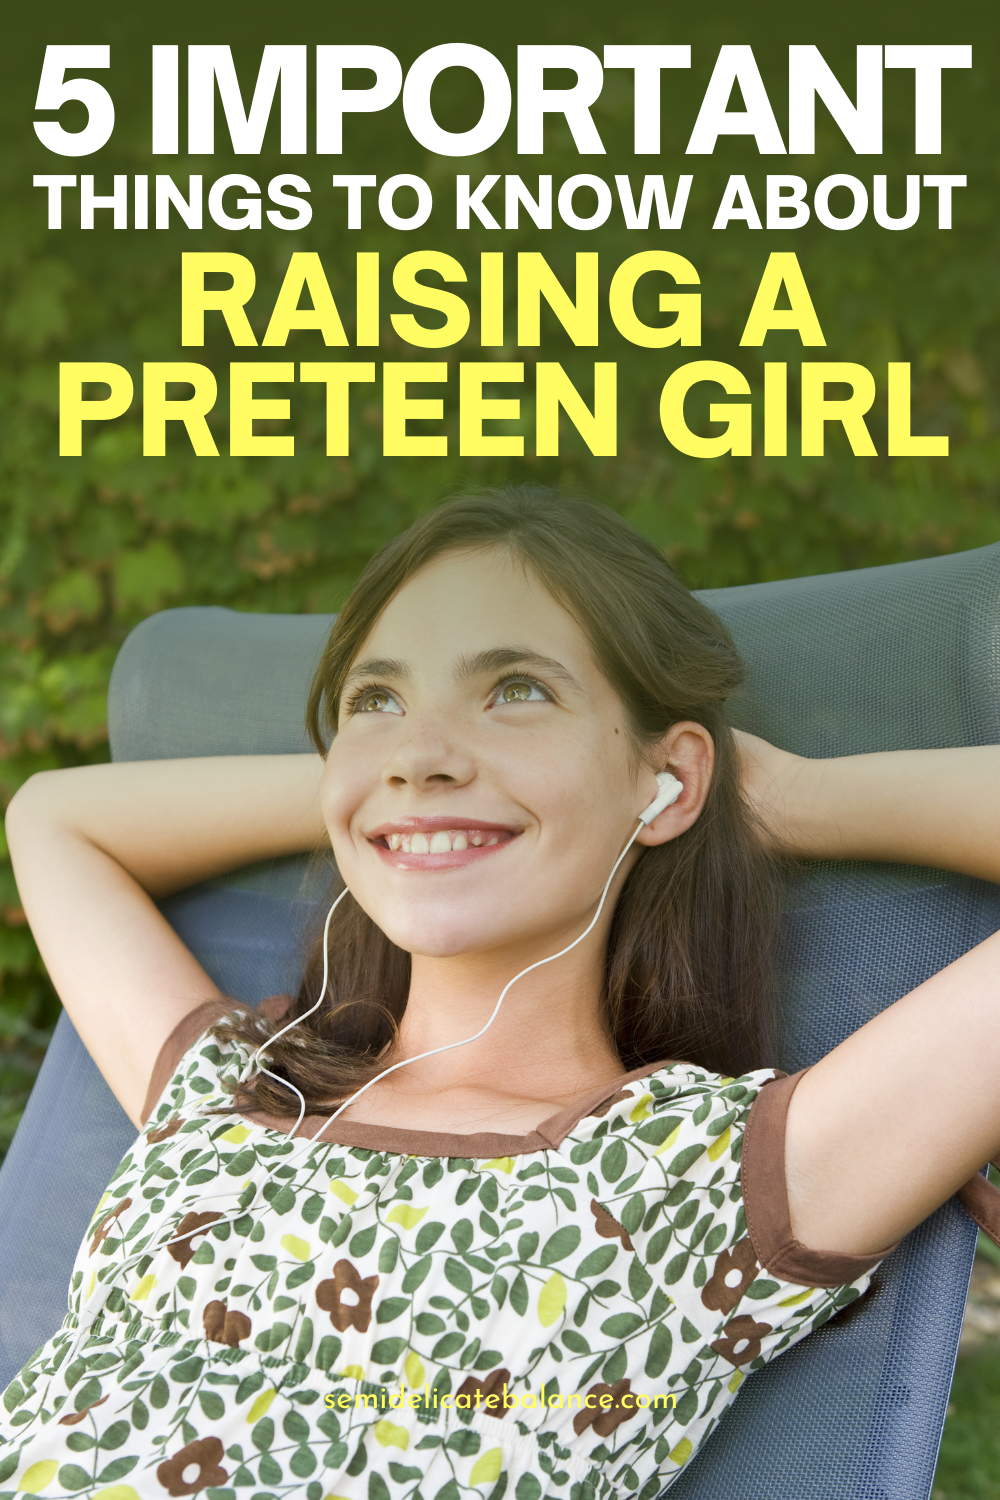 5 Important Things to Know About Raising A Preteen Daughter